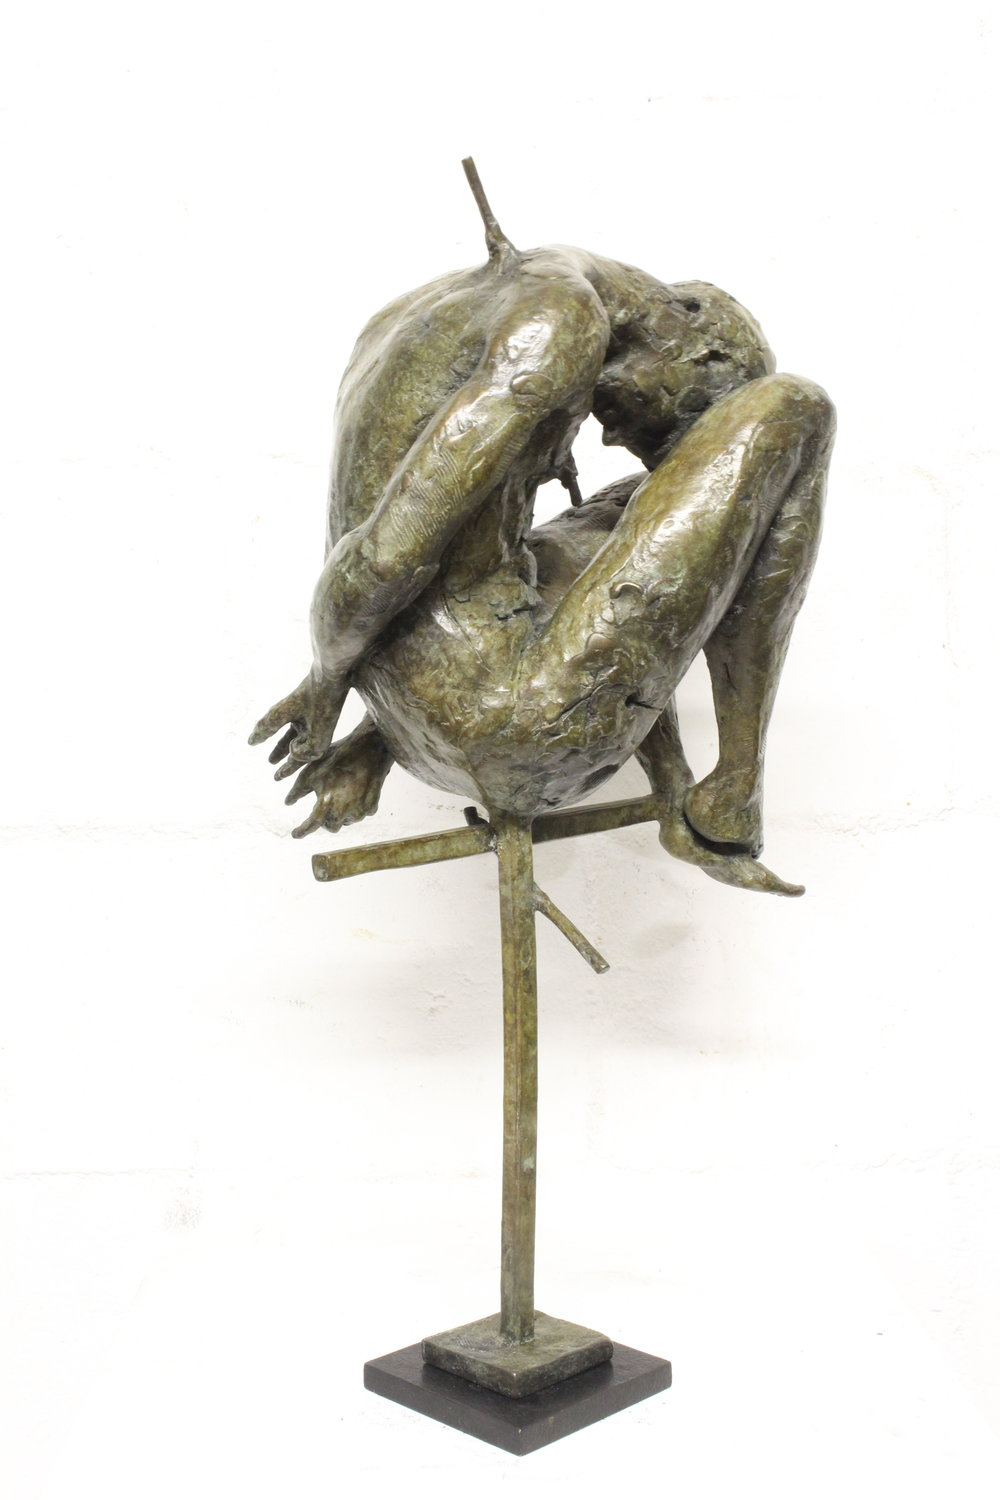 Adriaan Diedericks  Oblivion maquette (with head)  Bronze, edition of 12  57 x 27 x 22 cm